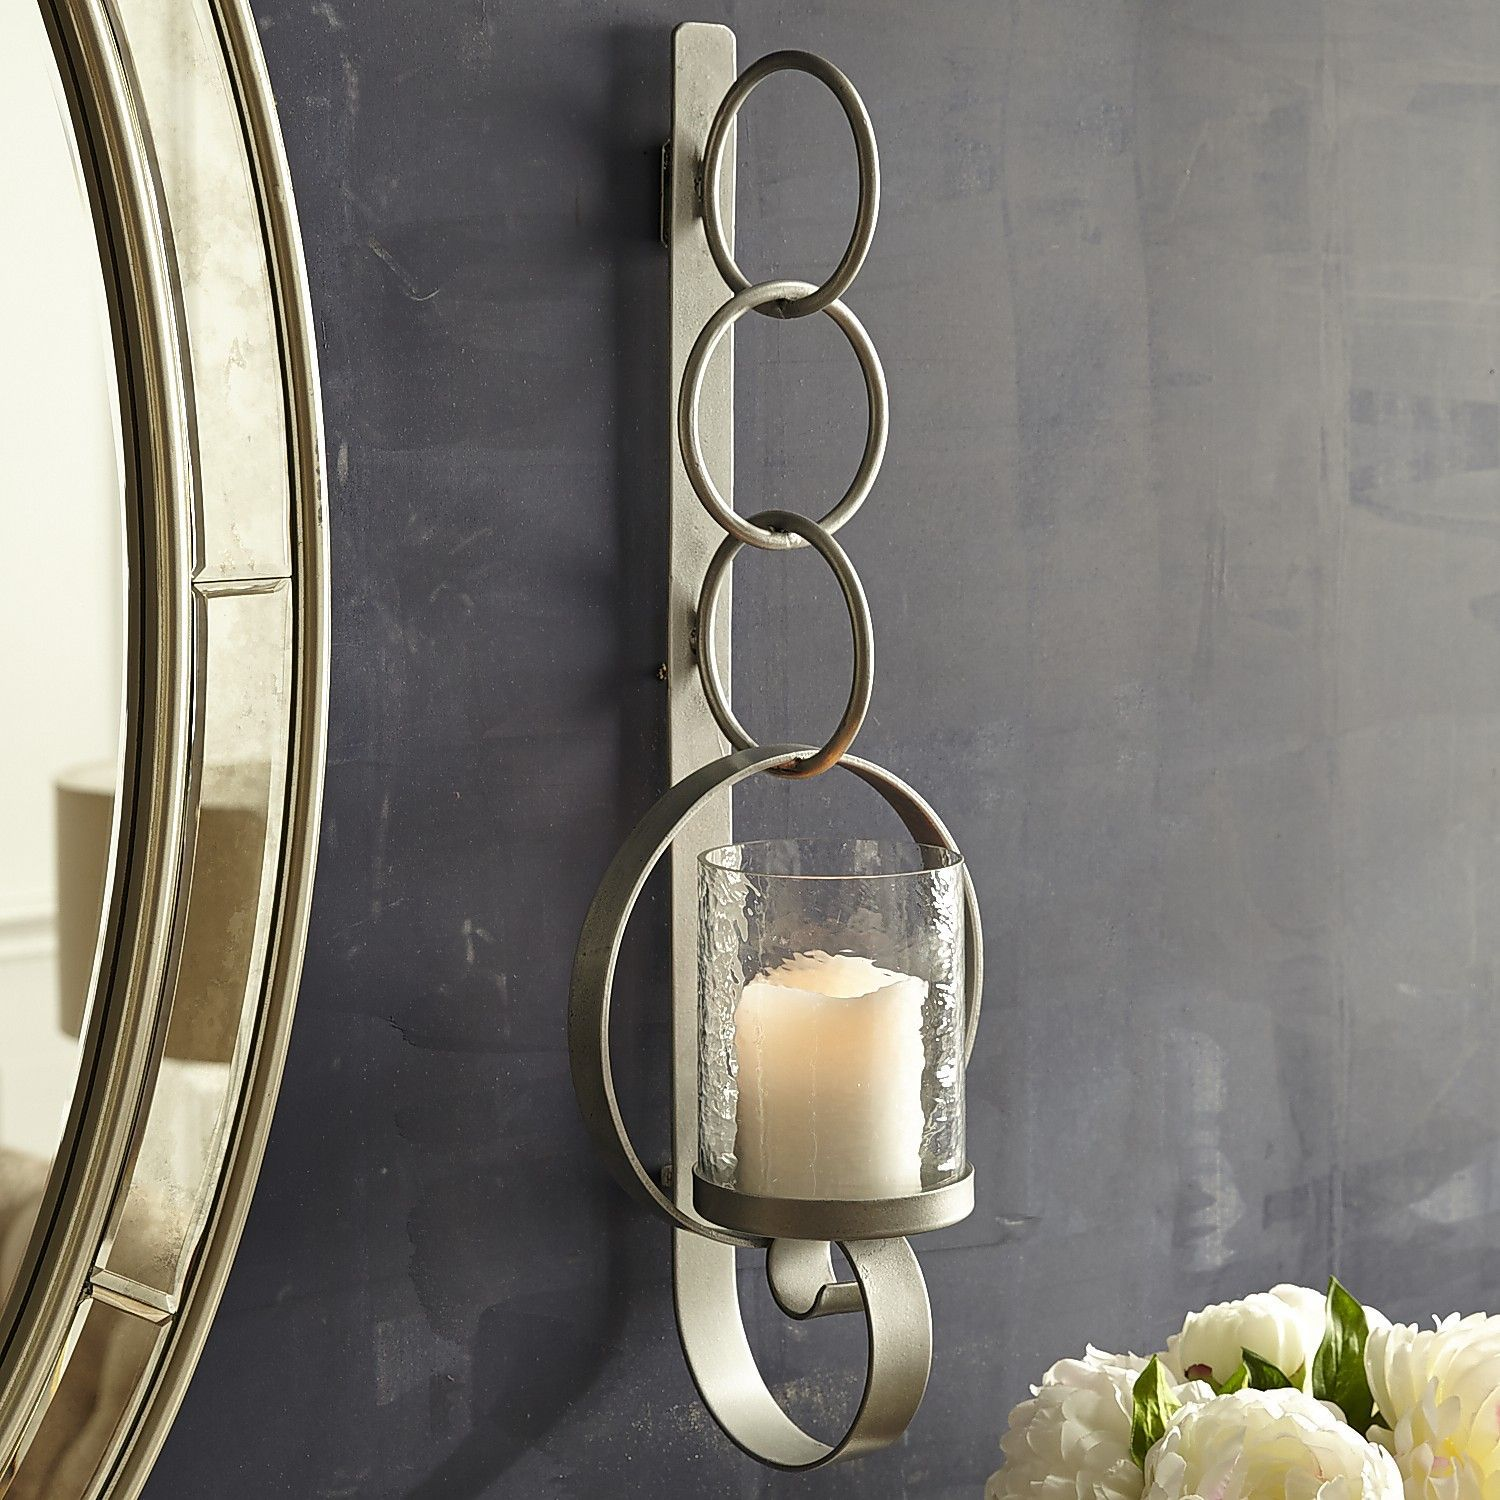 Silver Circle Pillar Candle Wall Sconce  Wall Sconces And Products Custom Candle Wall Sconces For Dining Room Decorating Design